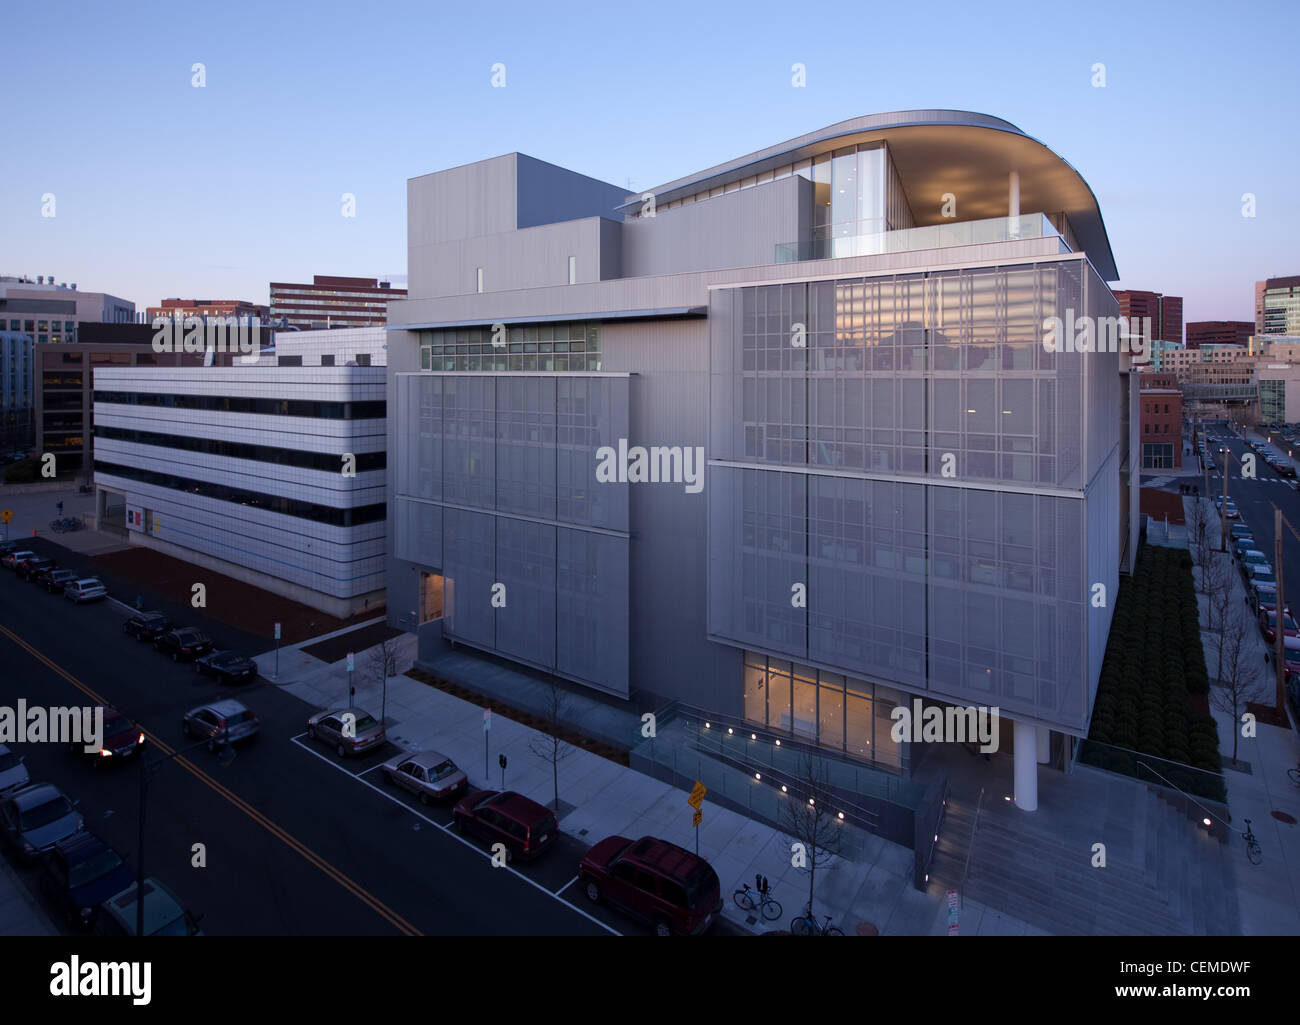 The Media Lab Extension (Building E14) at MIT, designed by